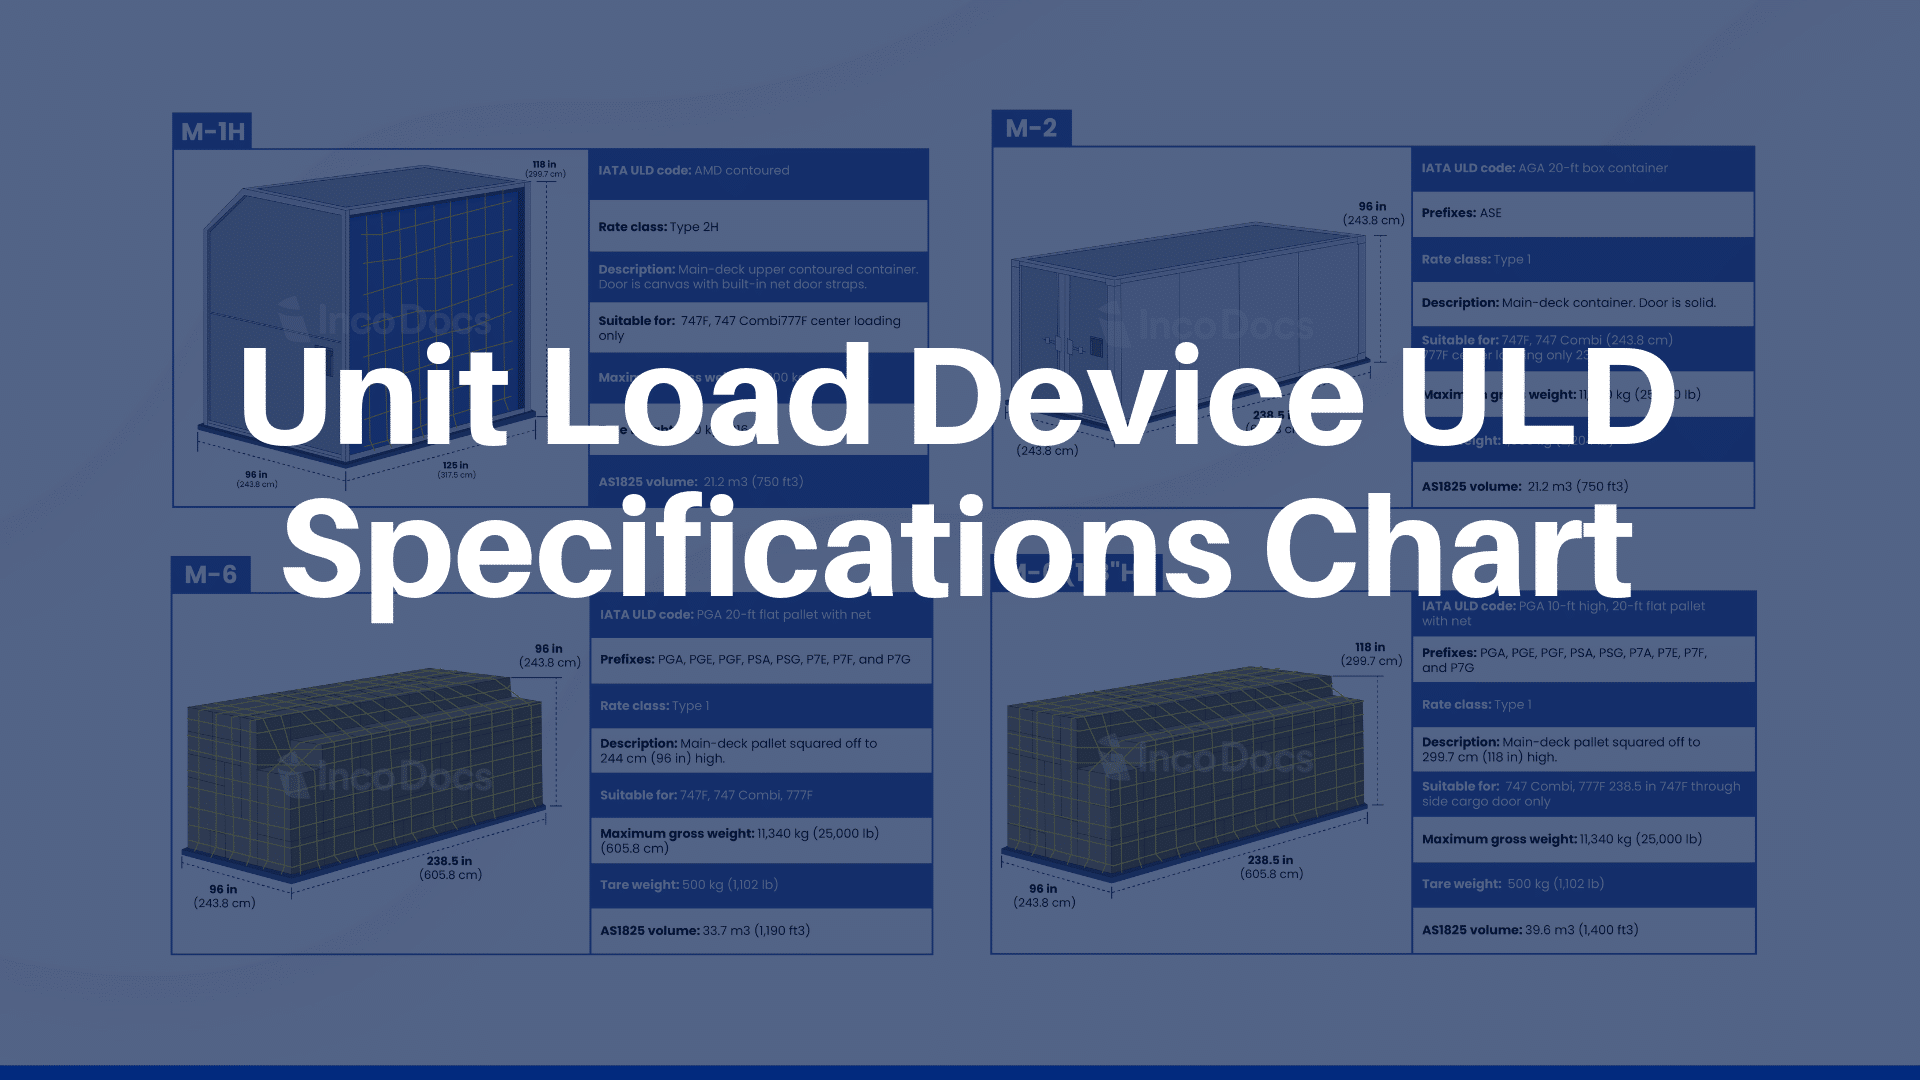 Unit Load Device Uld Air Container Specifications Incodocs